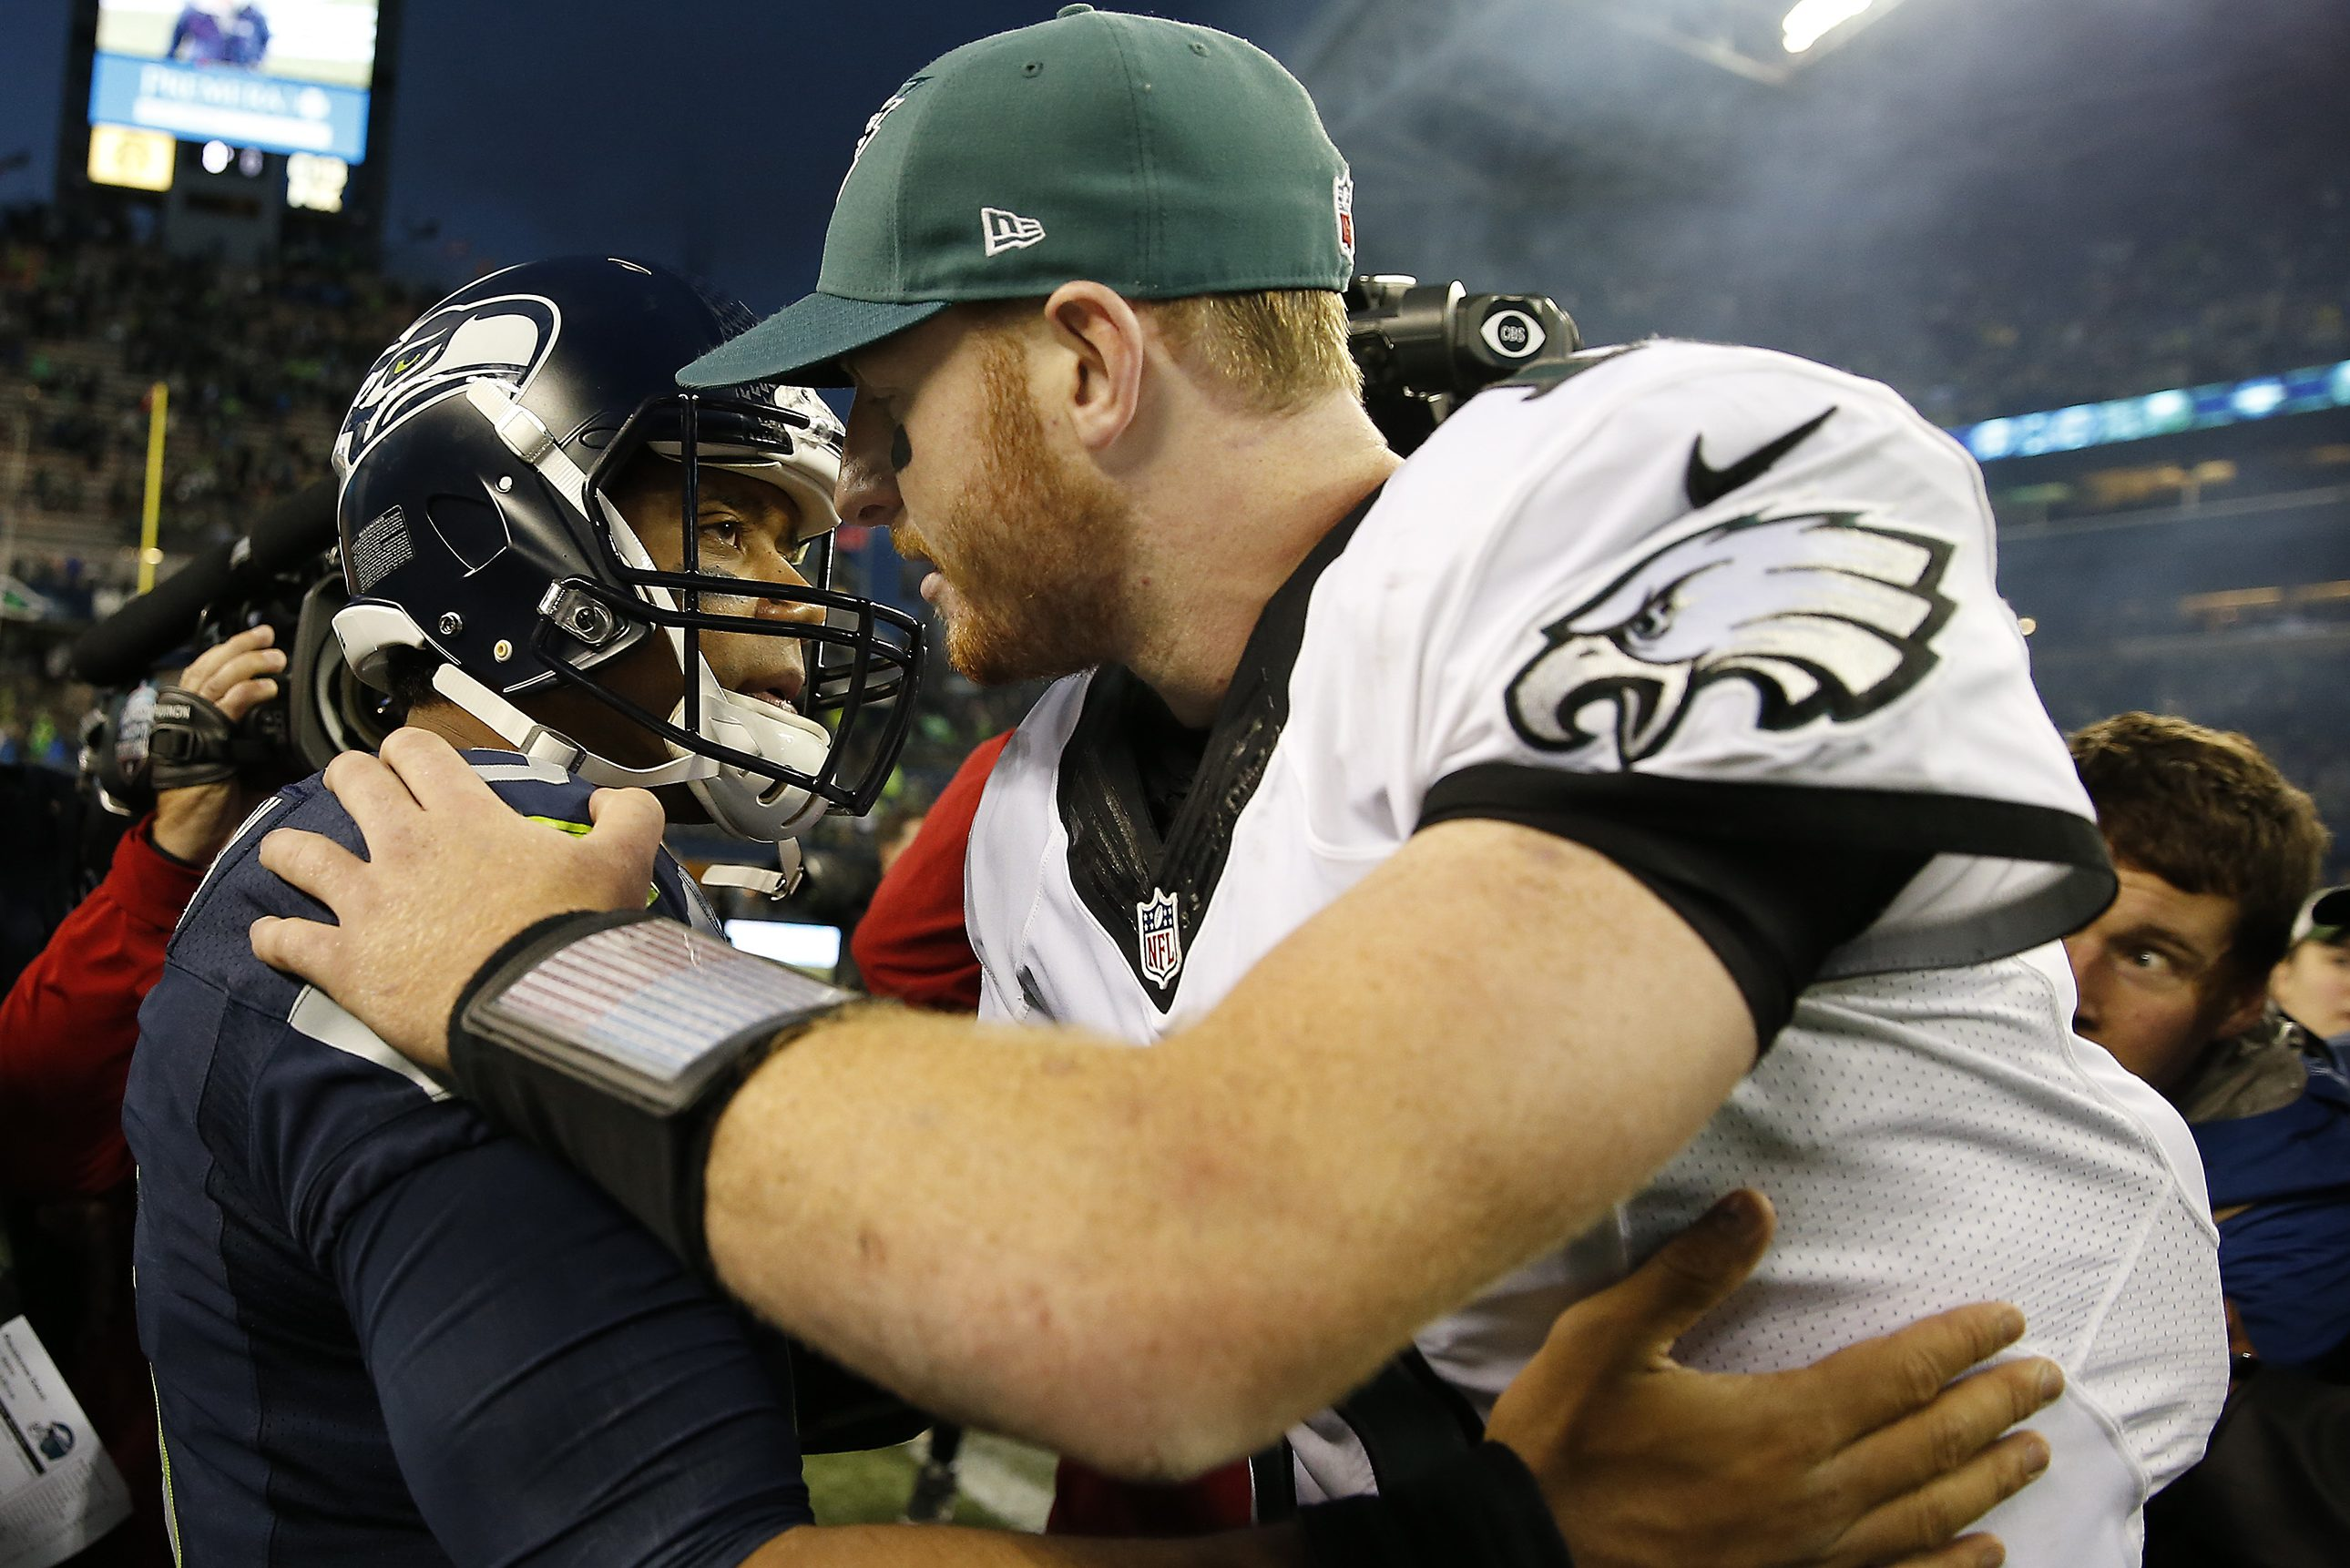 Seahawks' Russell Wilson, left, and Eagles' Carson Wentz, right, embrace after the game. Philadelphia Eagles lose 26-15 to the Seattle Seahawks in Seattle, WA on November 20, 2016. DAVID MAIALETTI / Staff Photographer